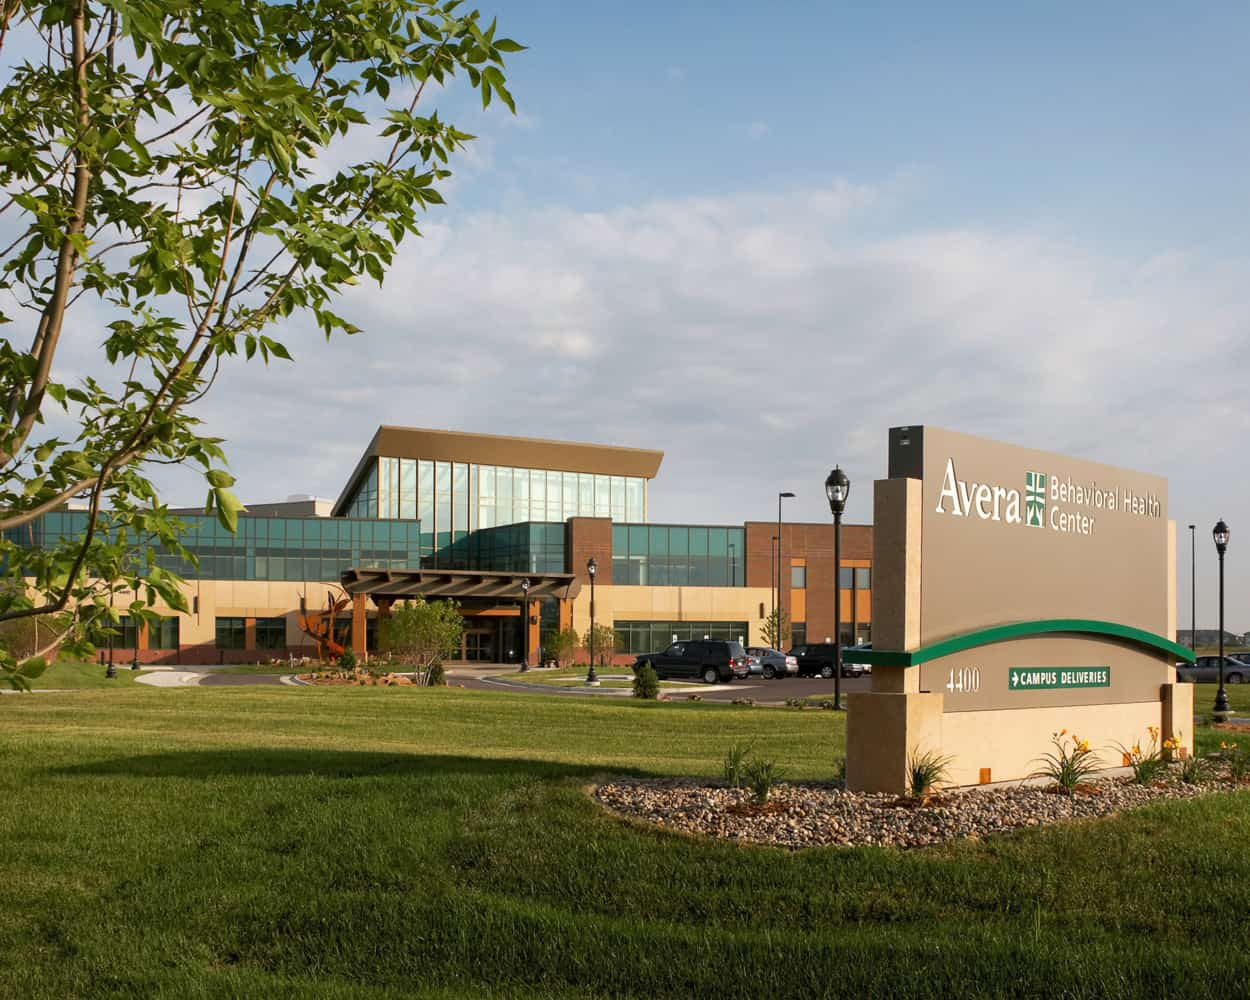 AVERA MCKENNAN HOSPITAL AVERA BEHAVIORAL HEALTH CENTER